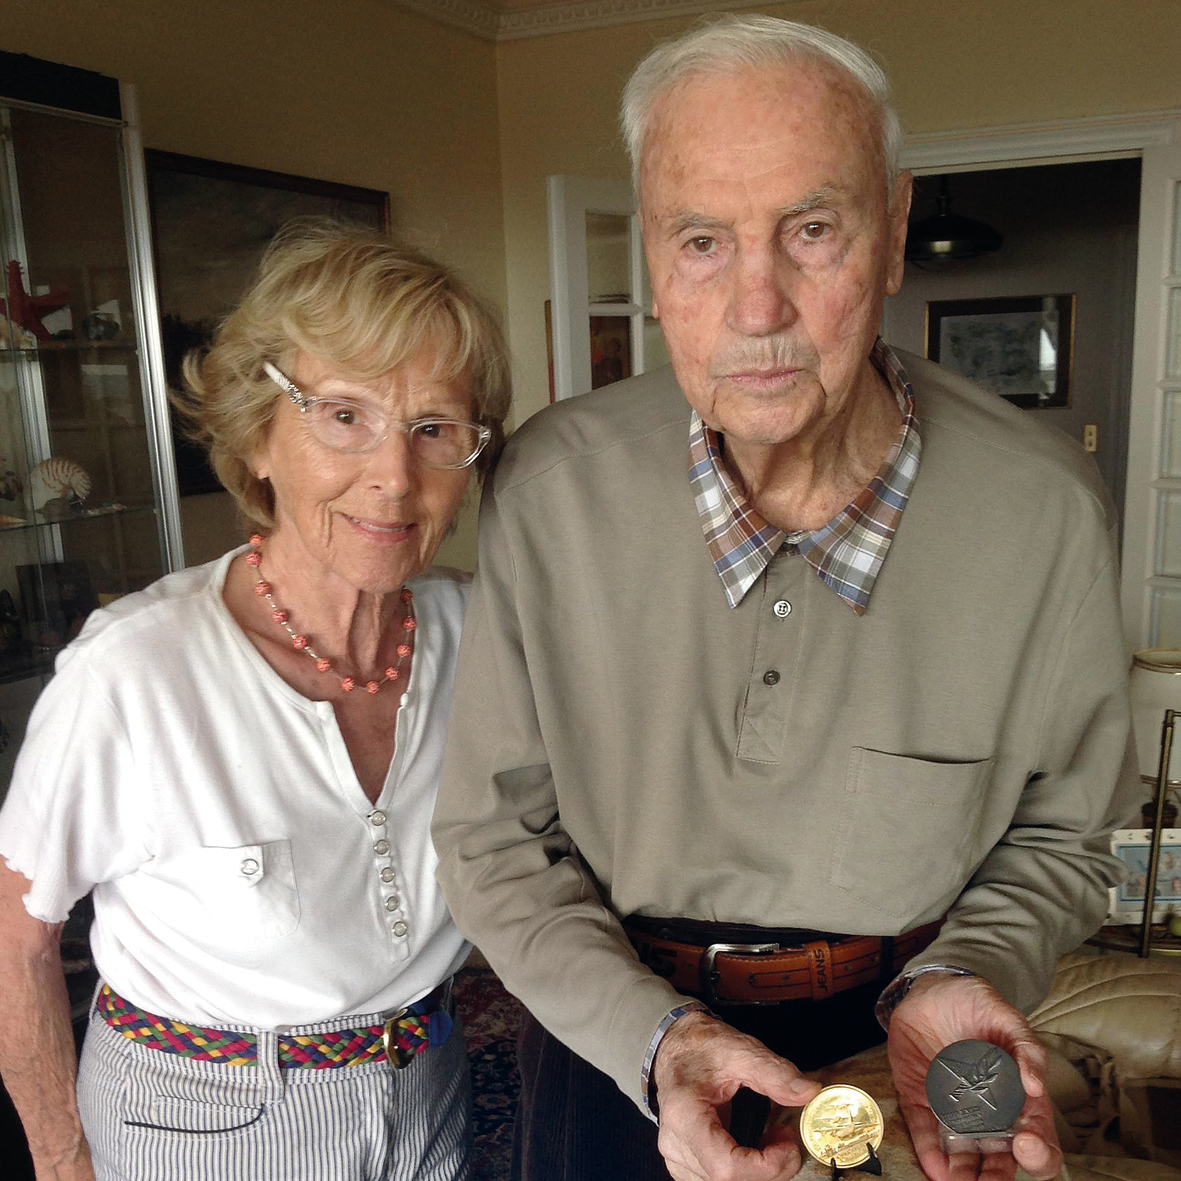 Michel Bacos, right, and his wife Rosemary.